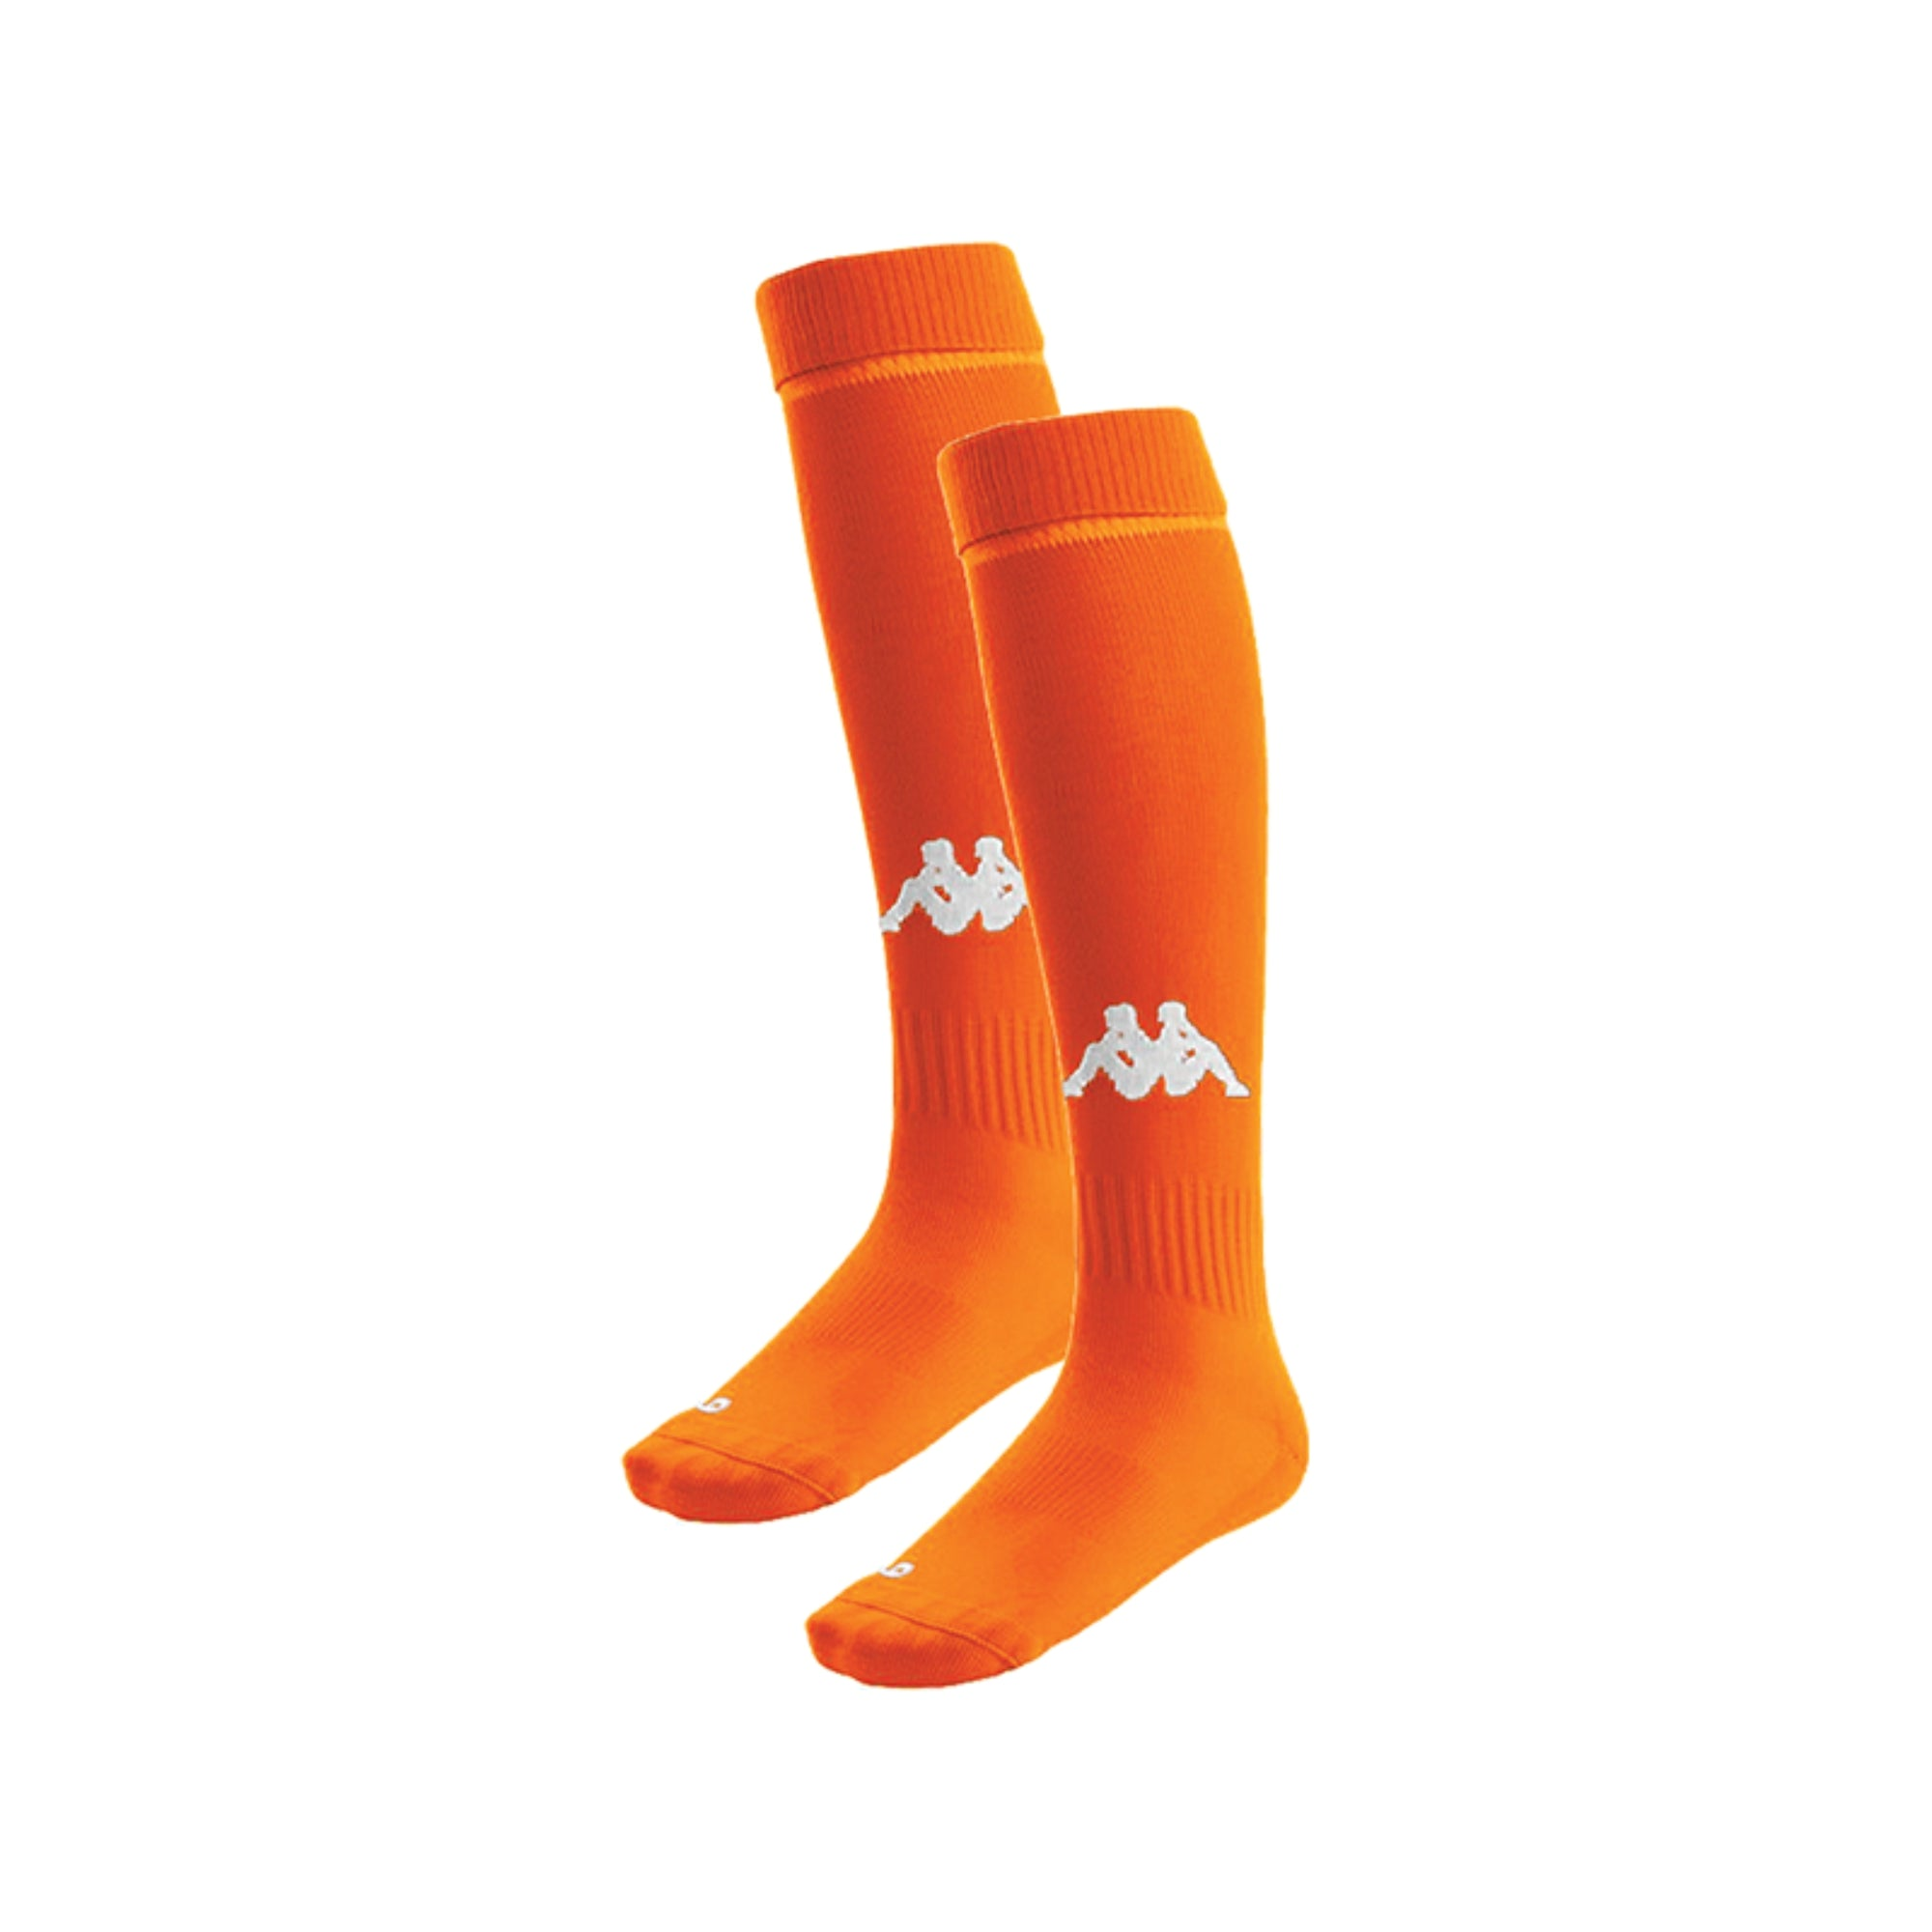 Kappa Penao socks in orange flame with knitted white Omini in the front shin area